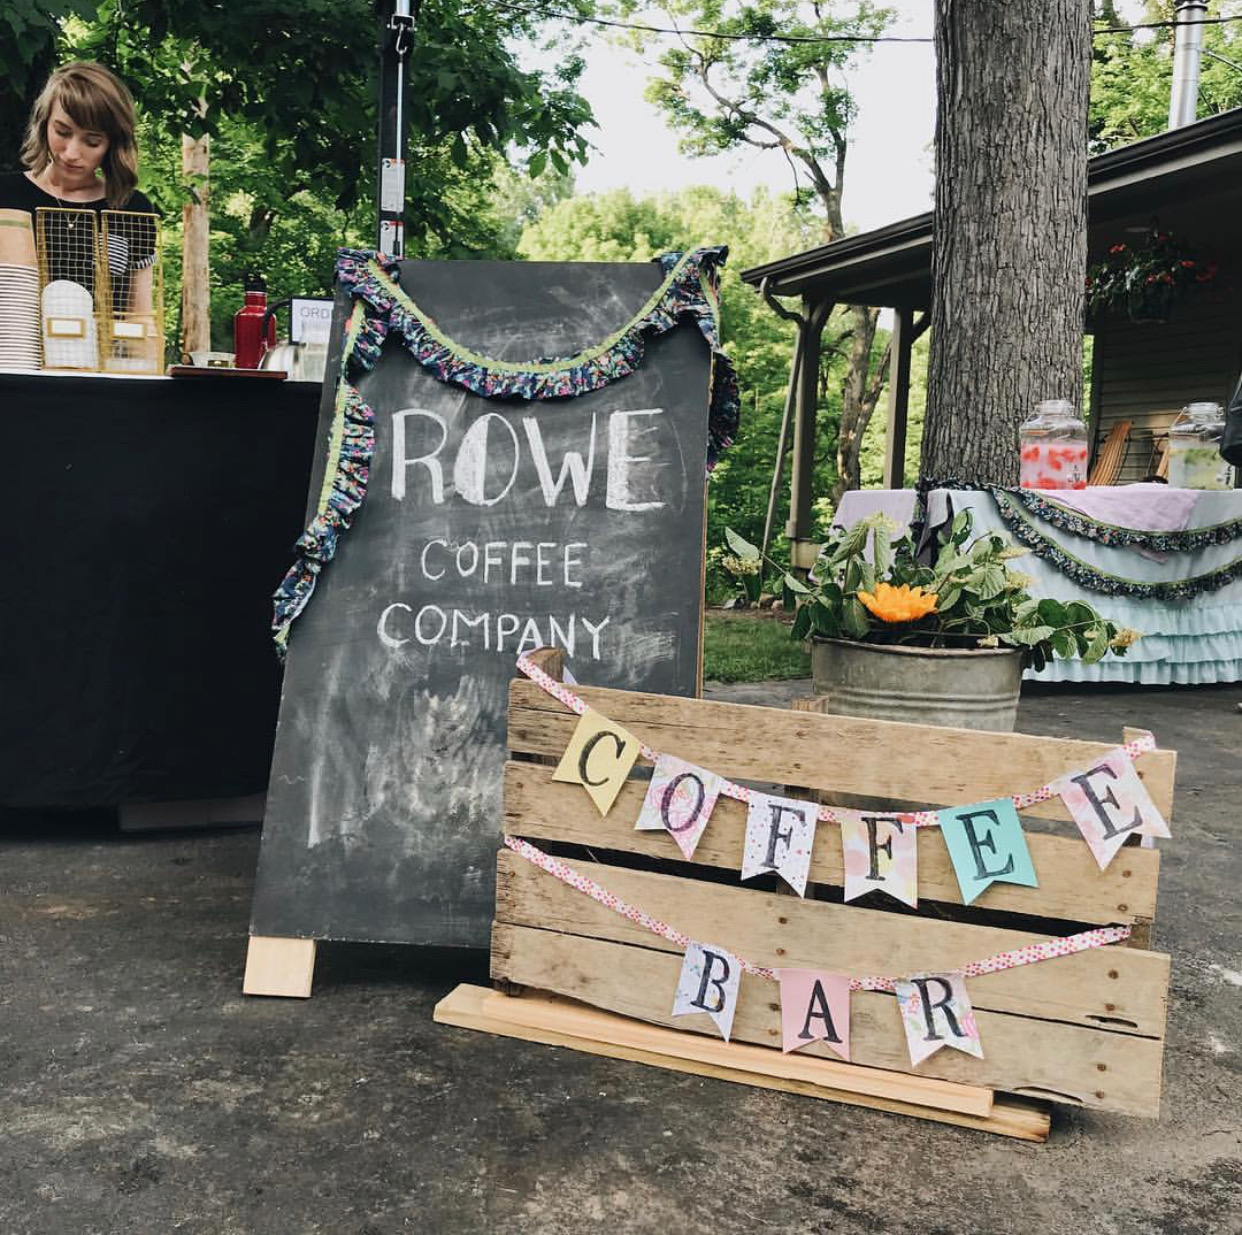 Find us again at the market starting 05.18.19 -